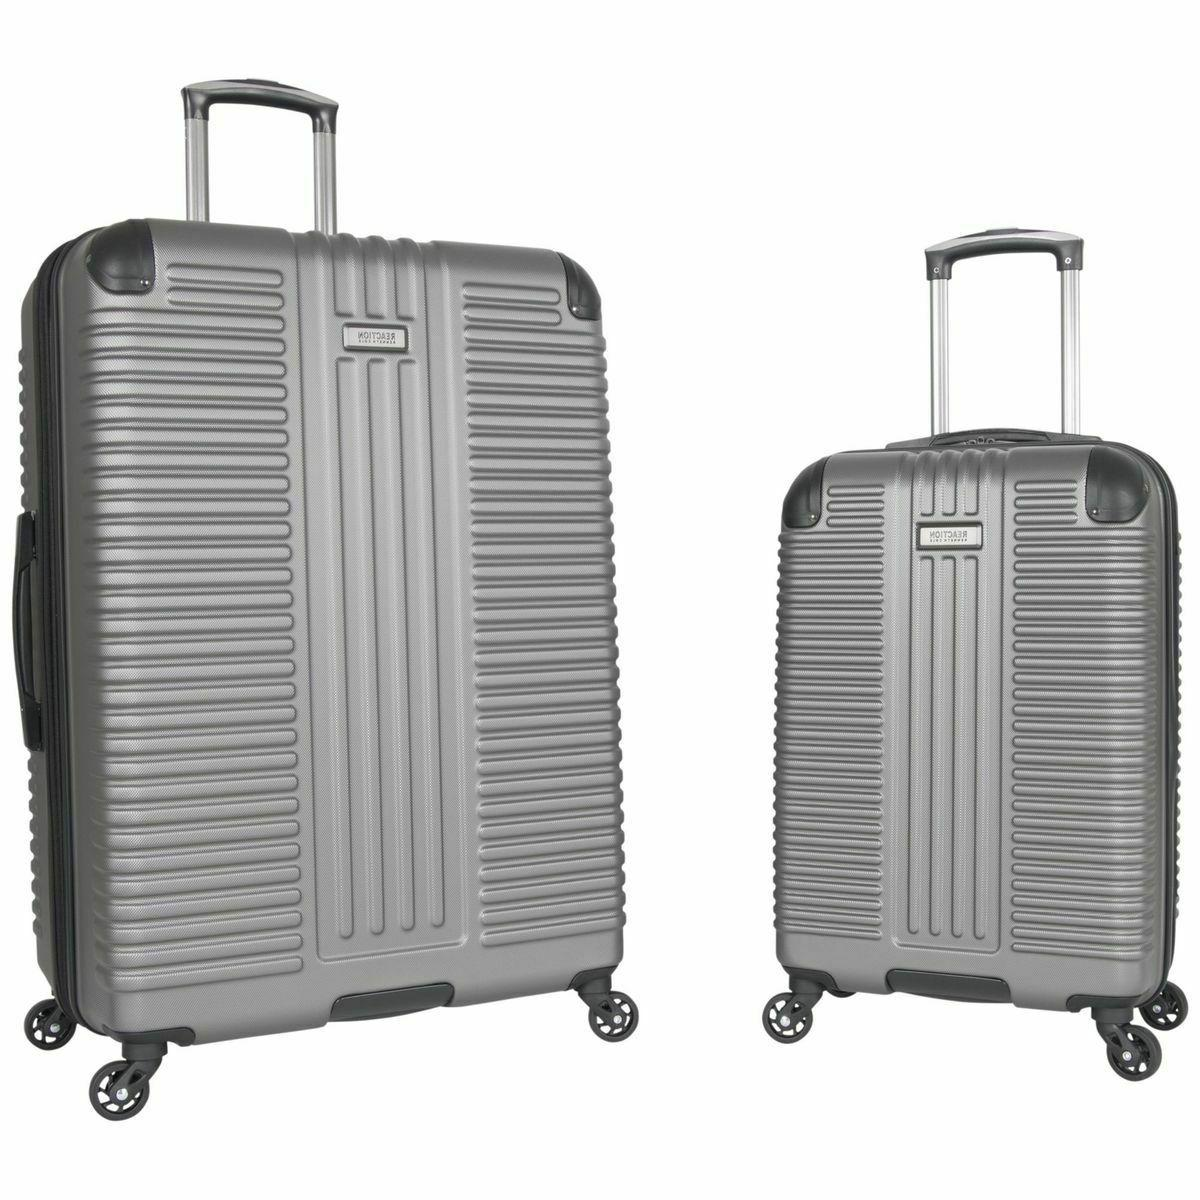 2 piece silver hardside luggage set out